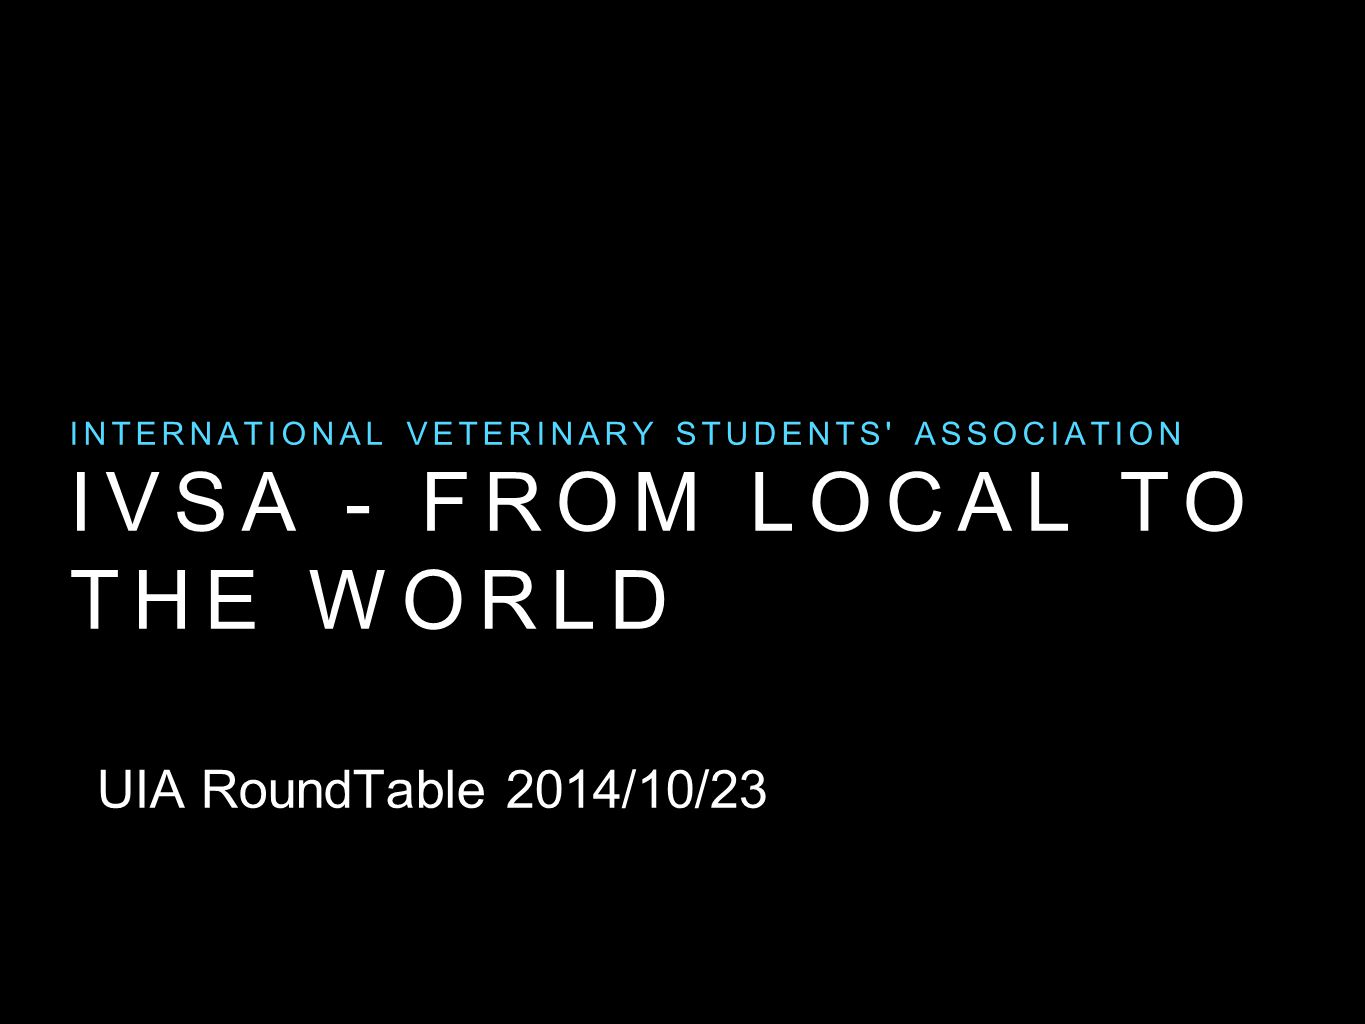 Ivsa - from local to the world